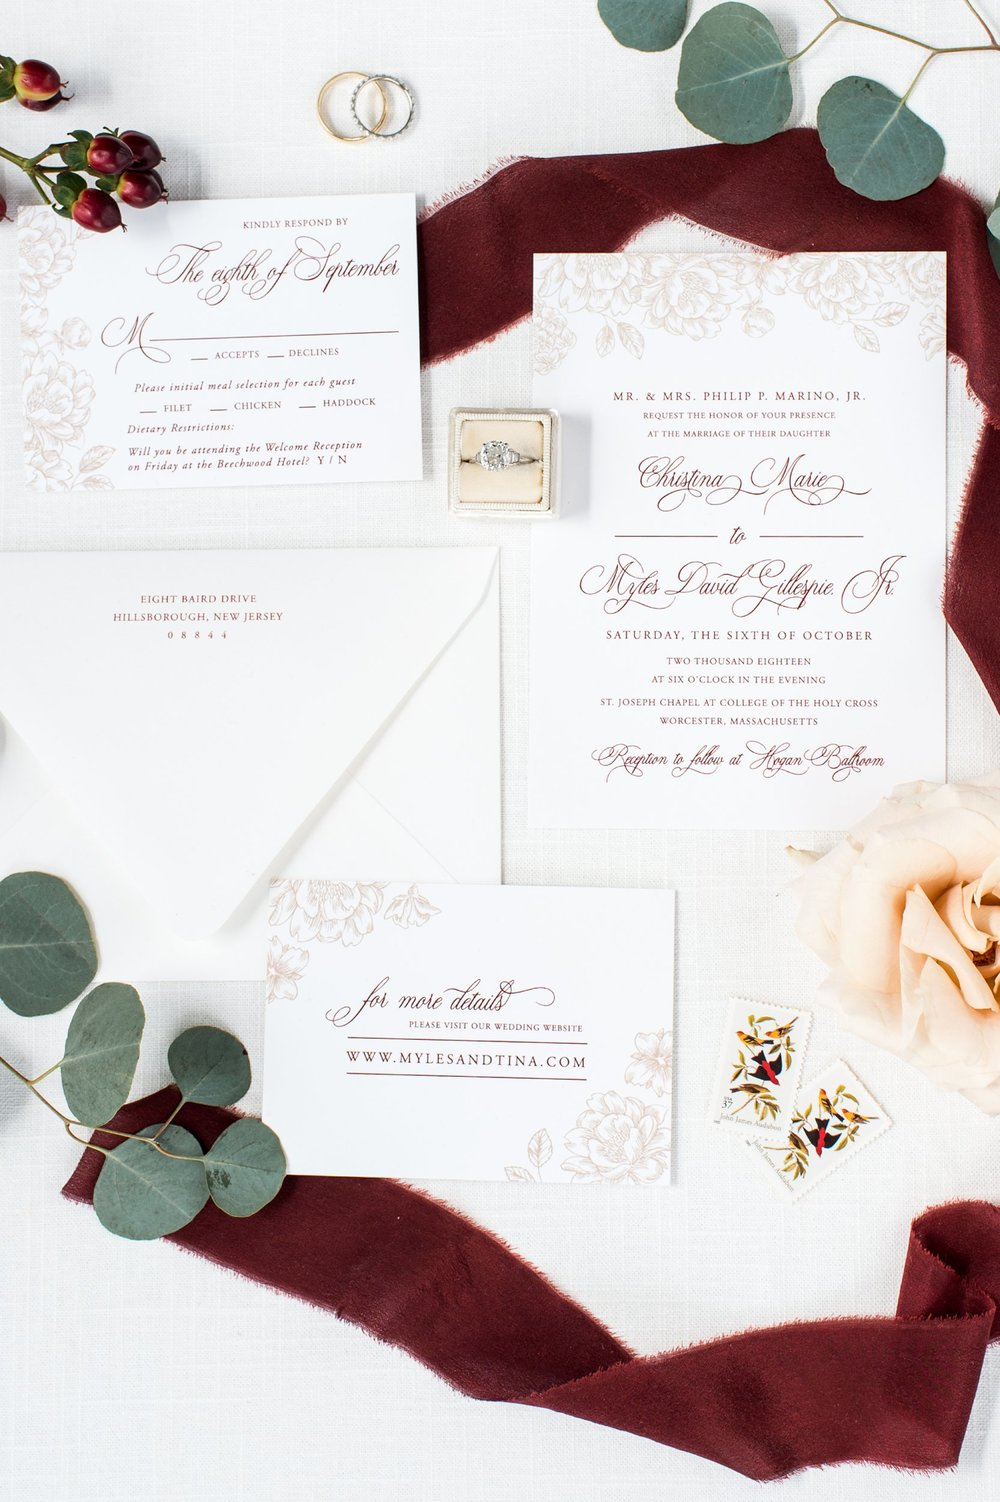 Roseville Designs Stationery The College of the Holy Cross Wedding